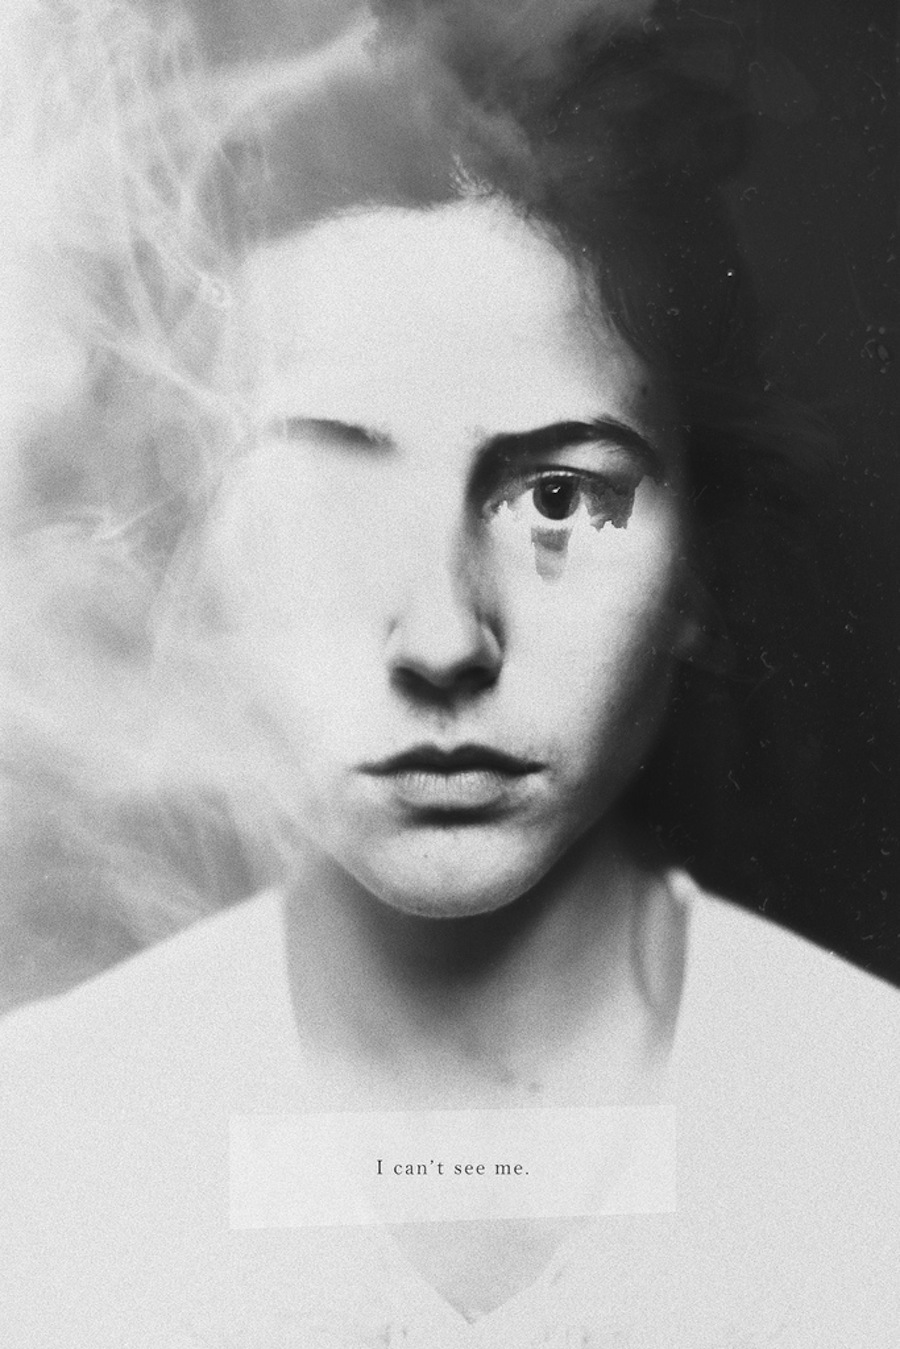 Silvia-Grav-black-and-white-photo-manipulations-11